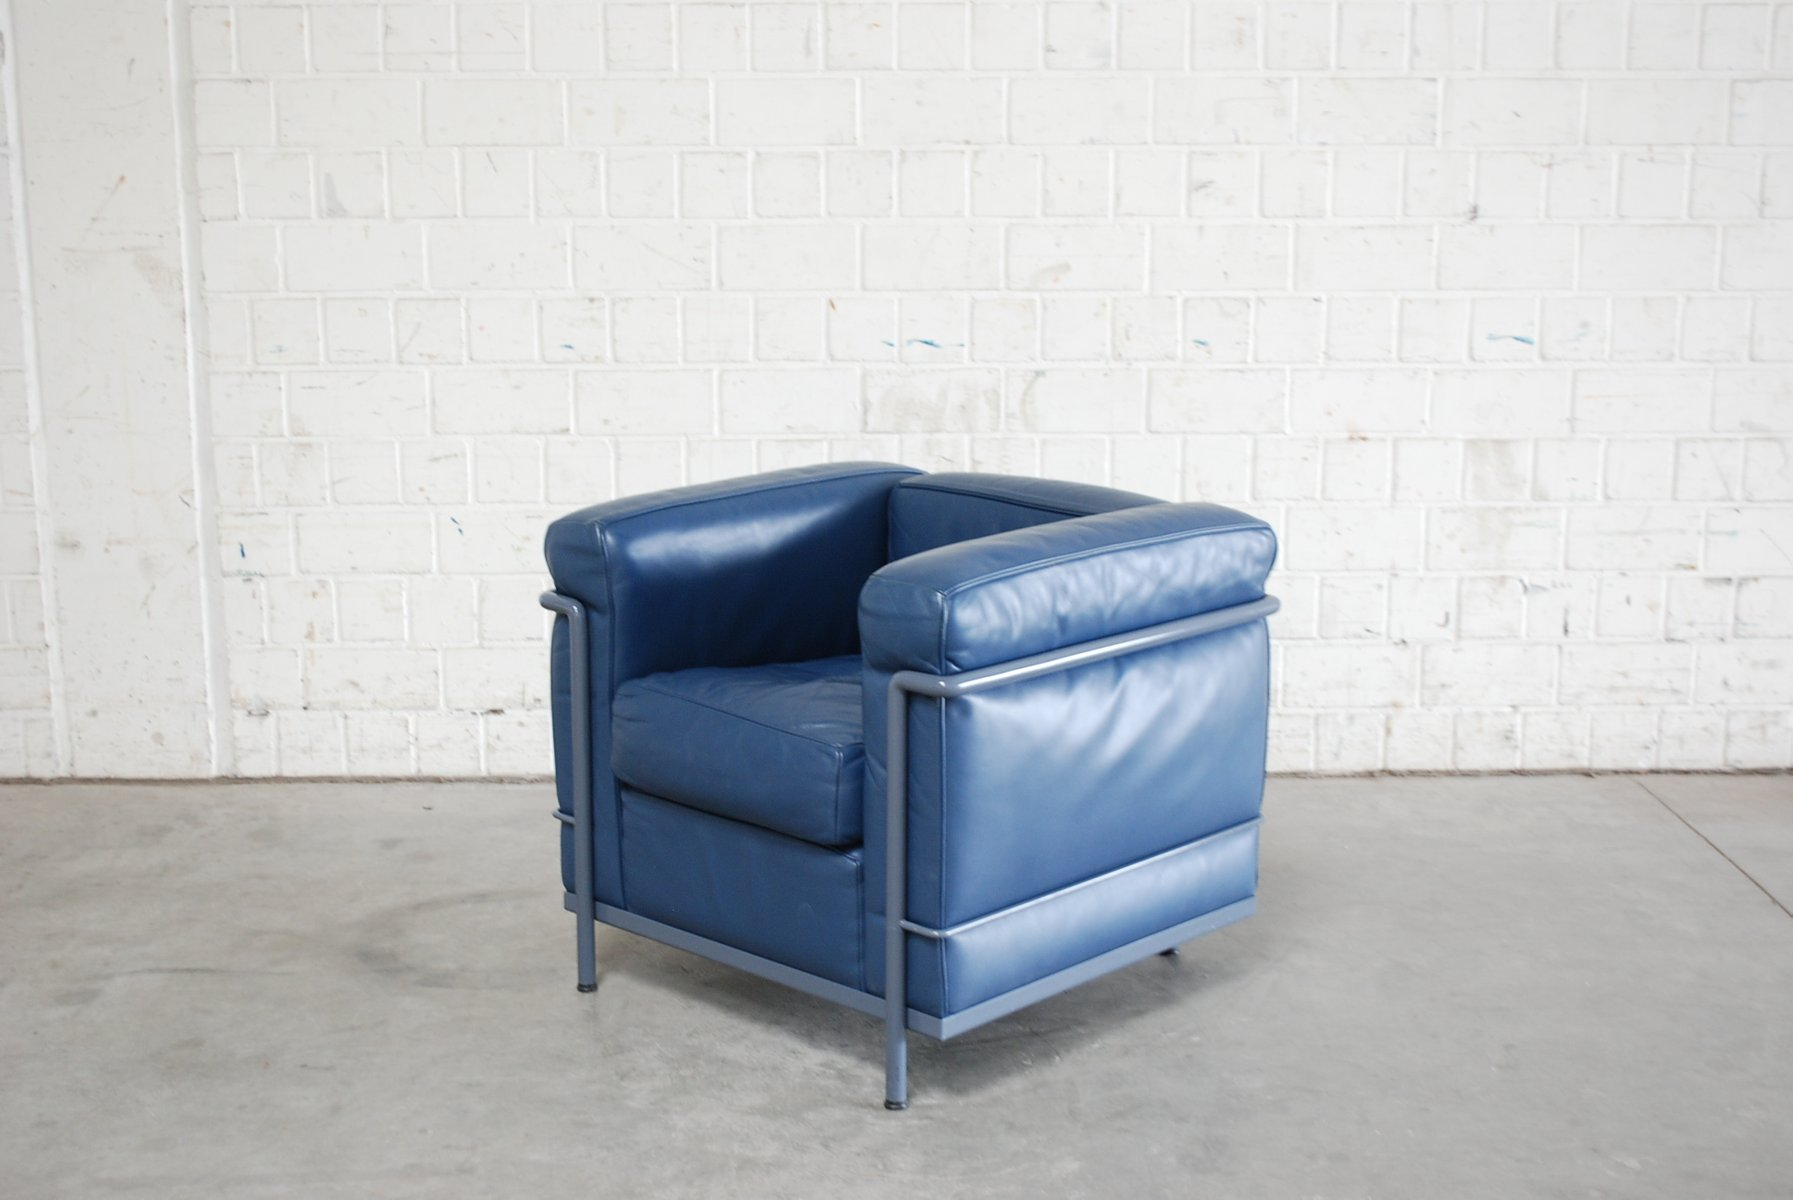 Vintage Blue Model LC2 Leather Chair by Le Corbusier for Cassina & Vintage Blue Model LC2 Leather Chair by Le Corbusier for Cassina for ...